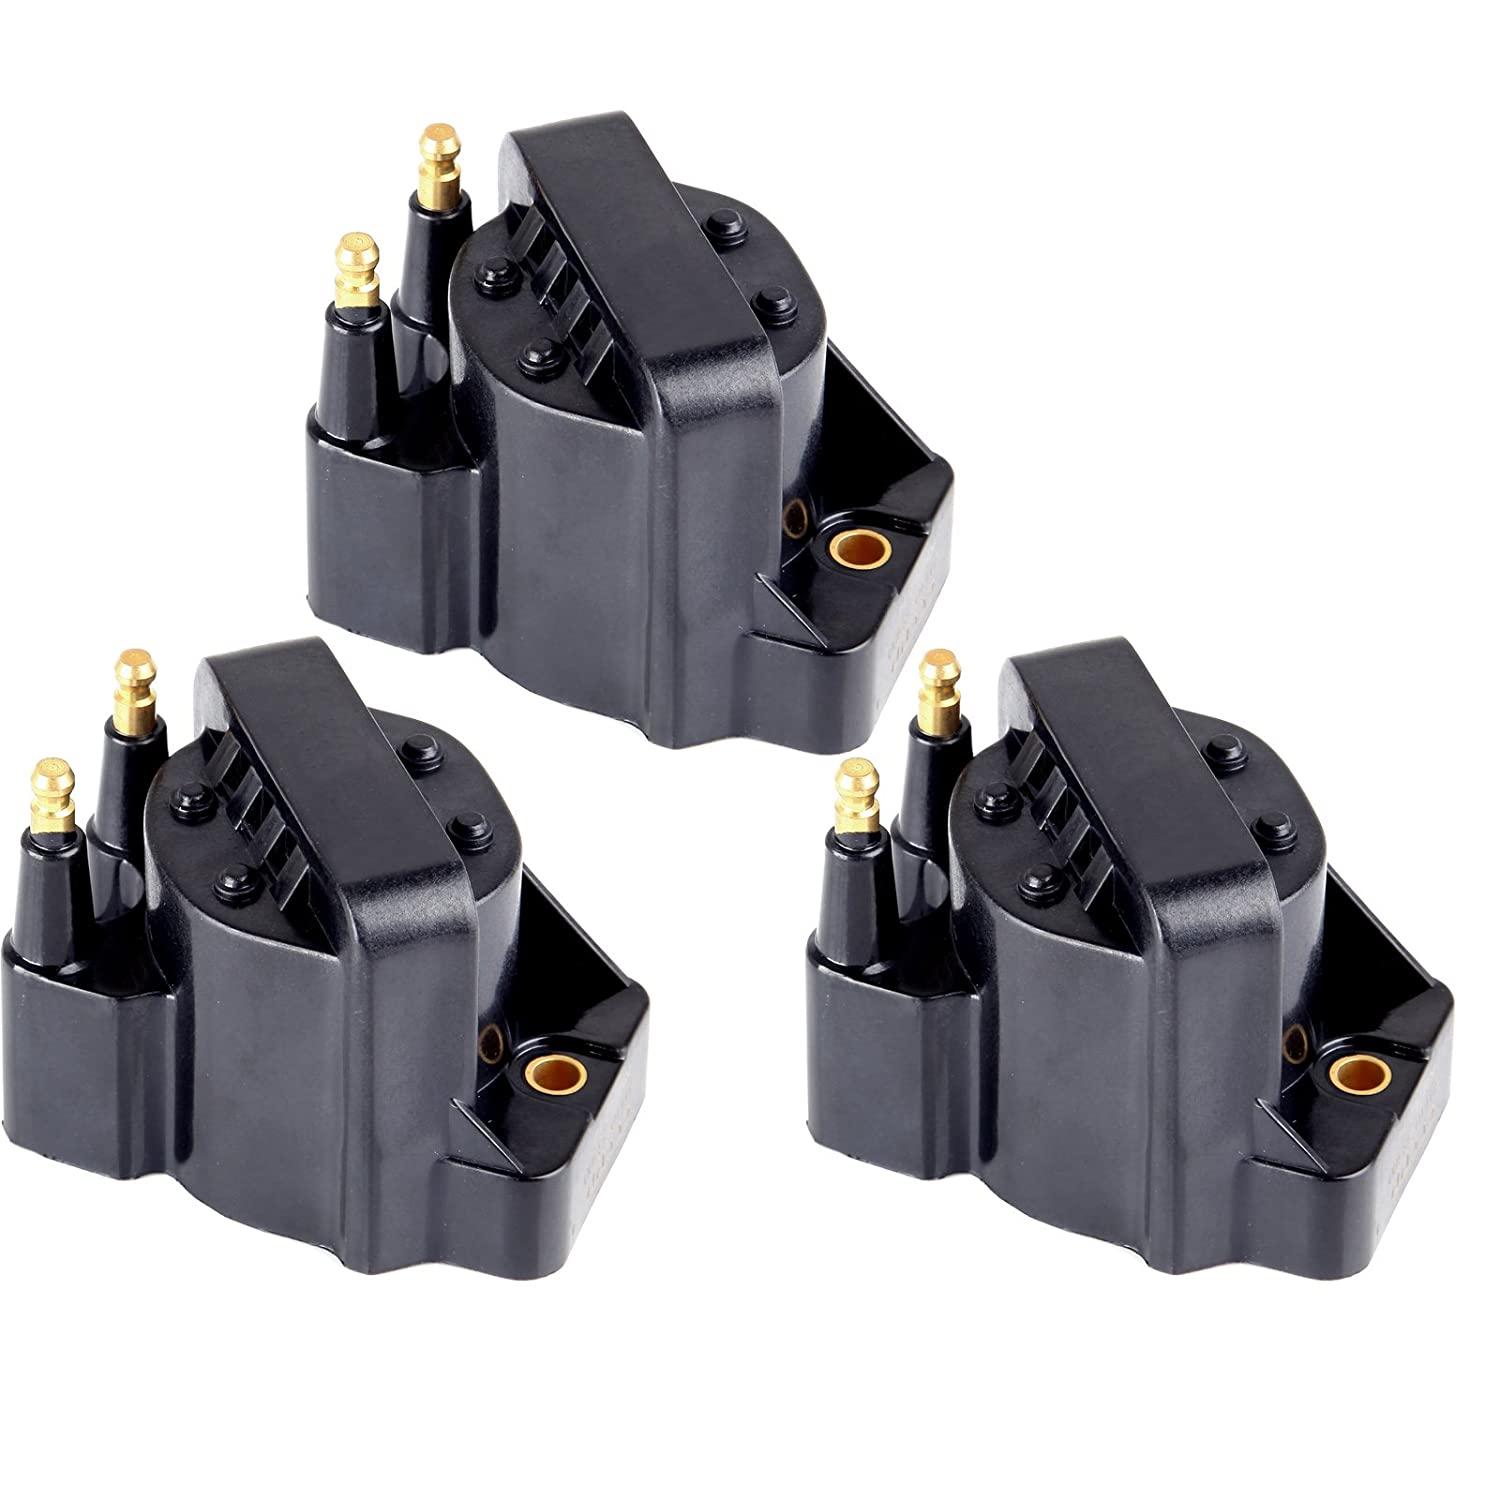 ECCPP Ignition Coils Pack of 3 Compatible with Buick Cadillac GMC Isuzu Pontiac Chevy Honda Oldsmobile1986-2009 Replacement for DR39 C1316 D545